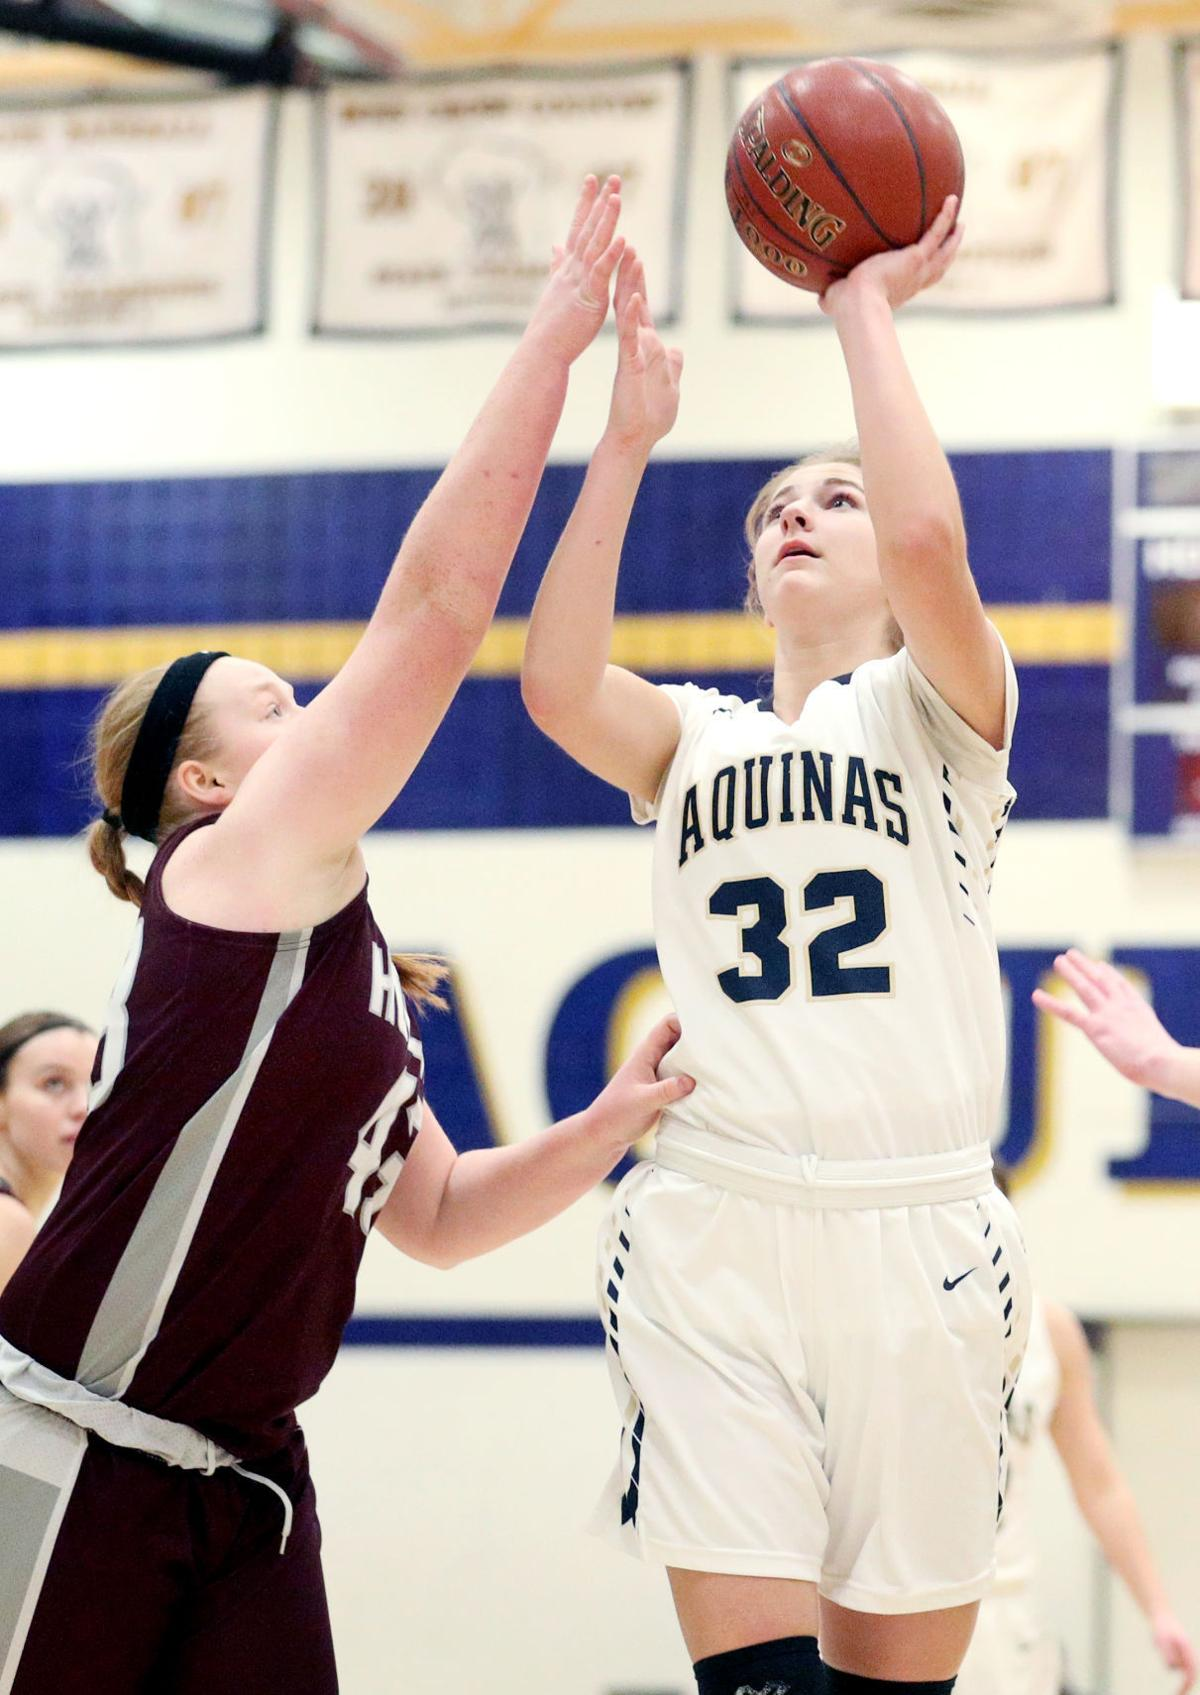 Aquinas' Courtney Becker